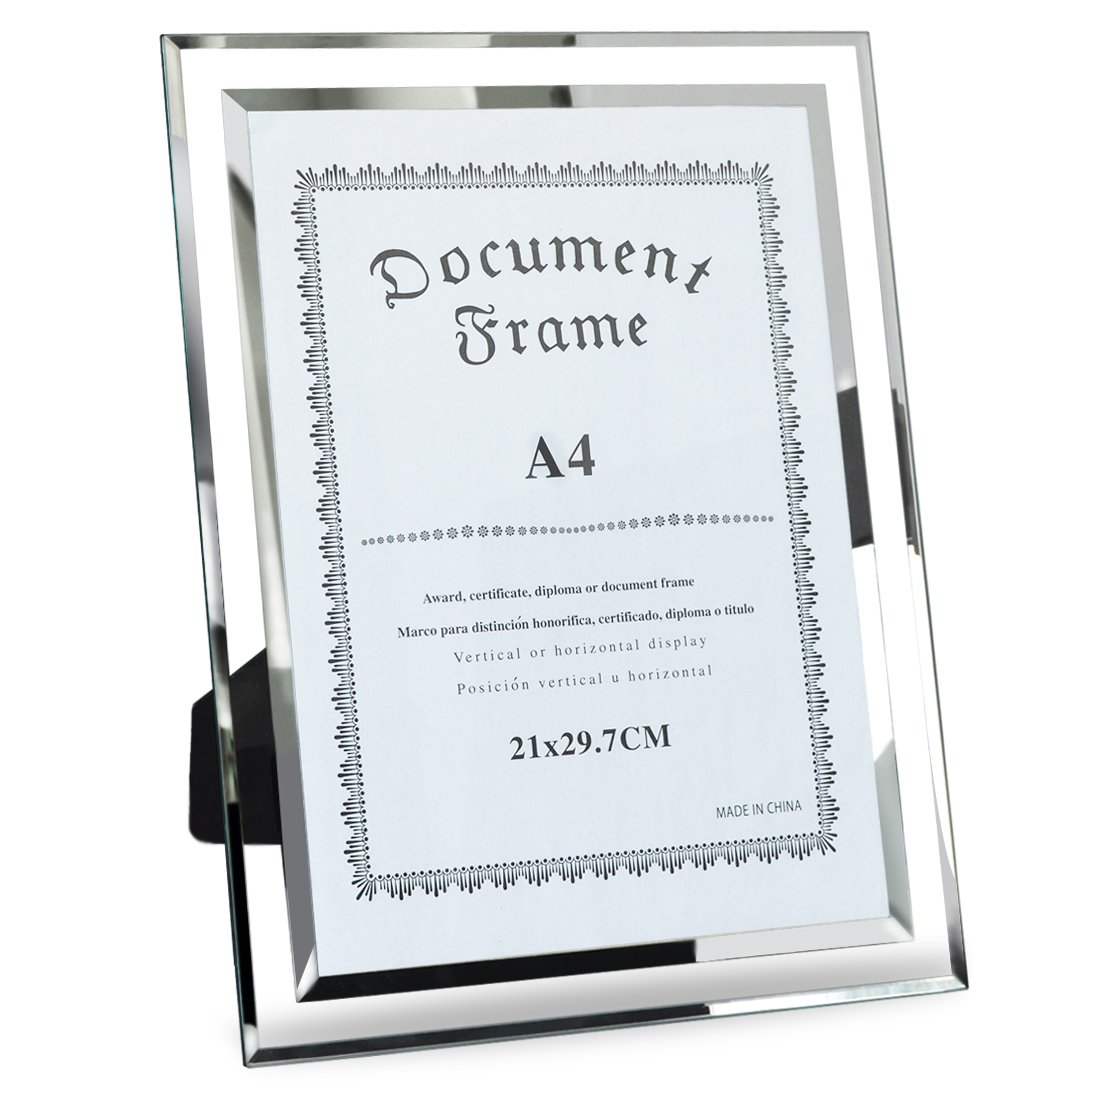 Giftgarden A4 Size Certificate Document Frame Tabletop Display, 21x29.7cm by Giftgarden